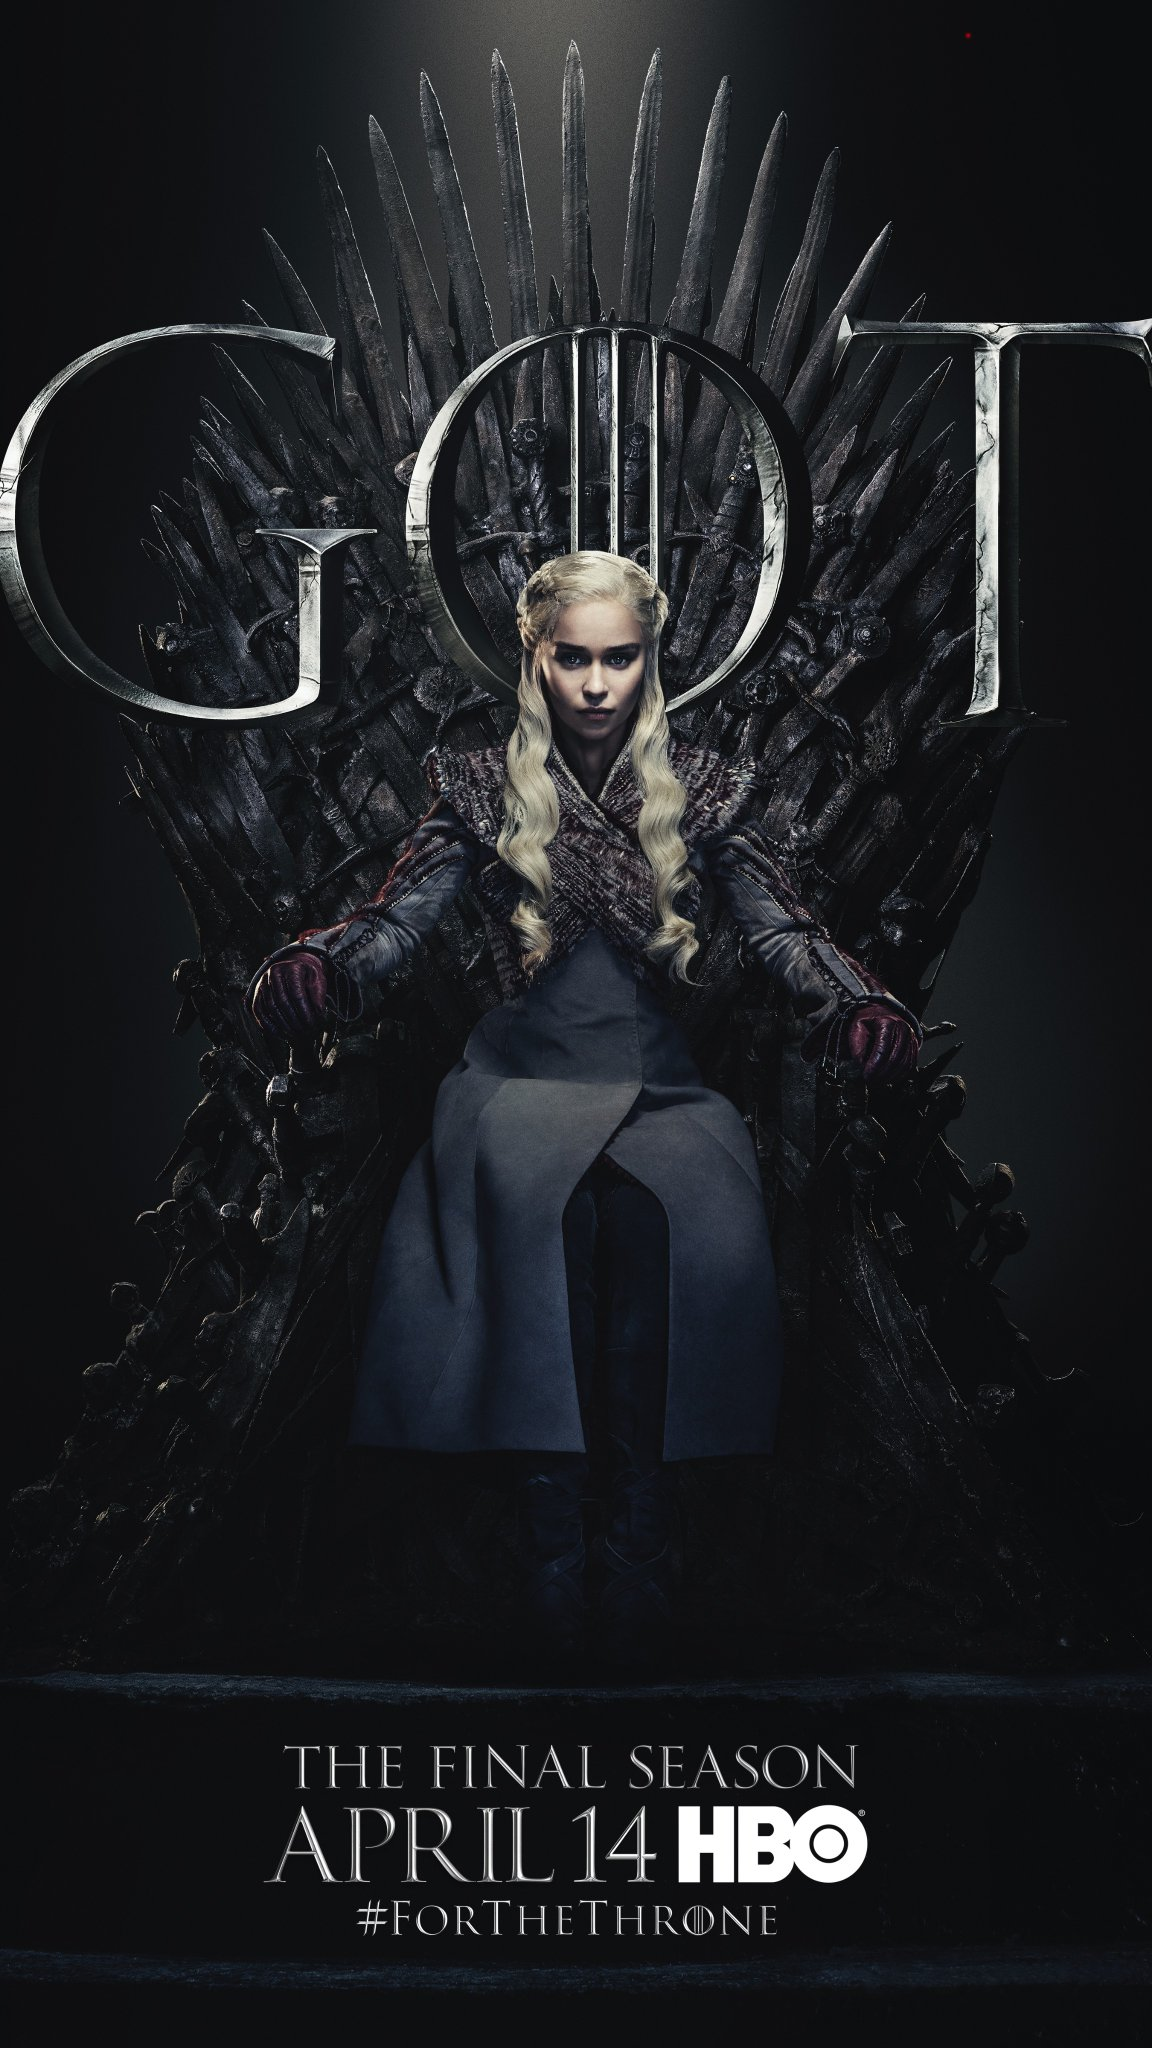 Iron Throne Poster - Daenerys Targaryen